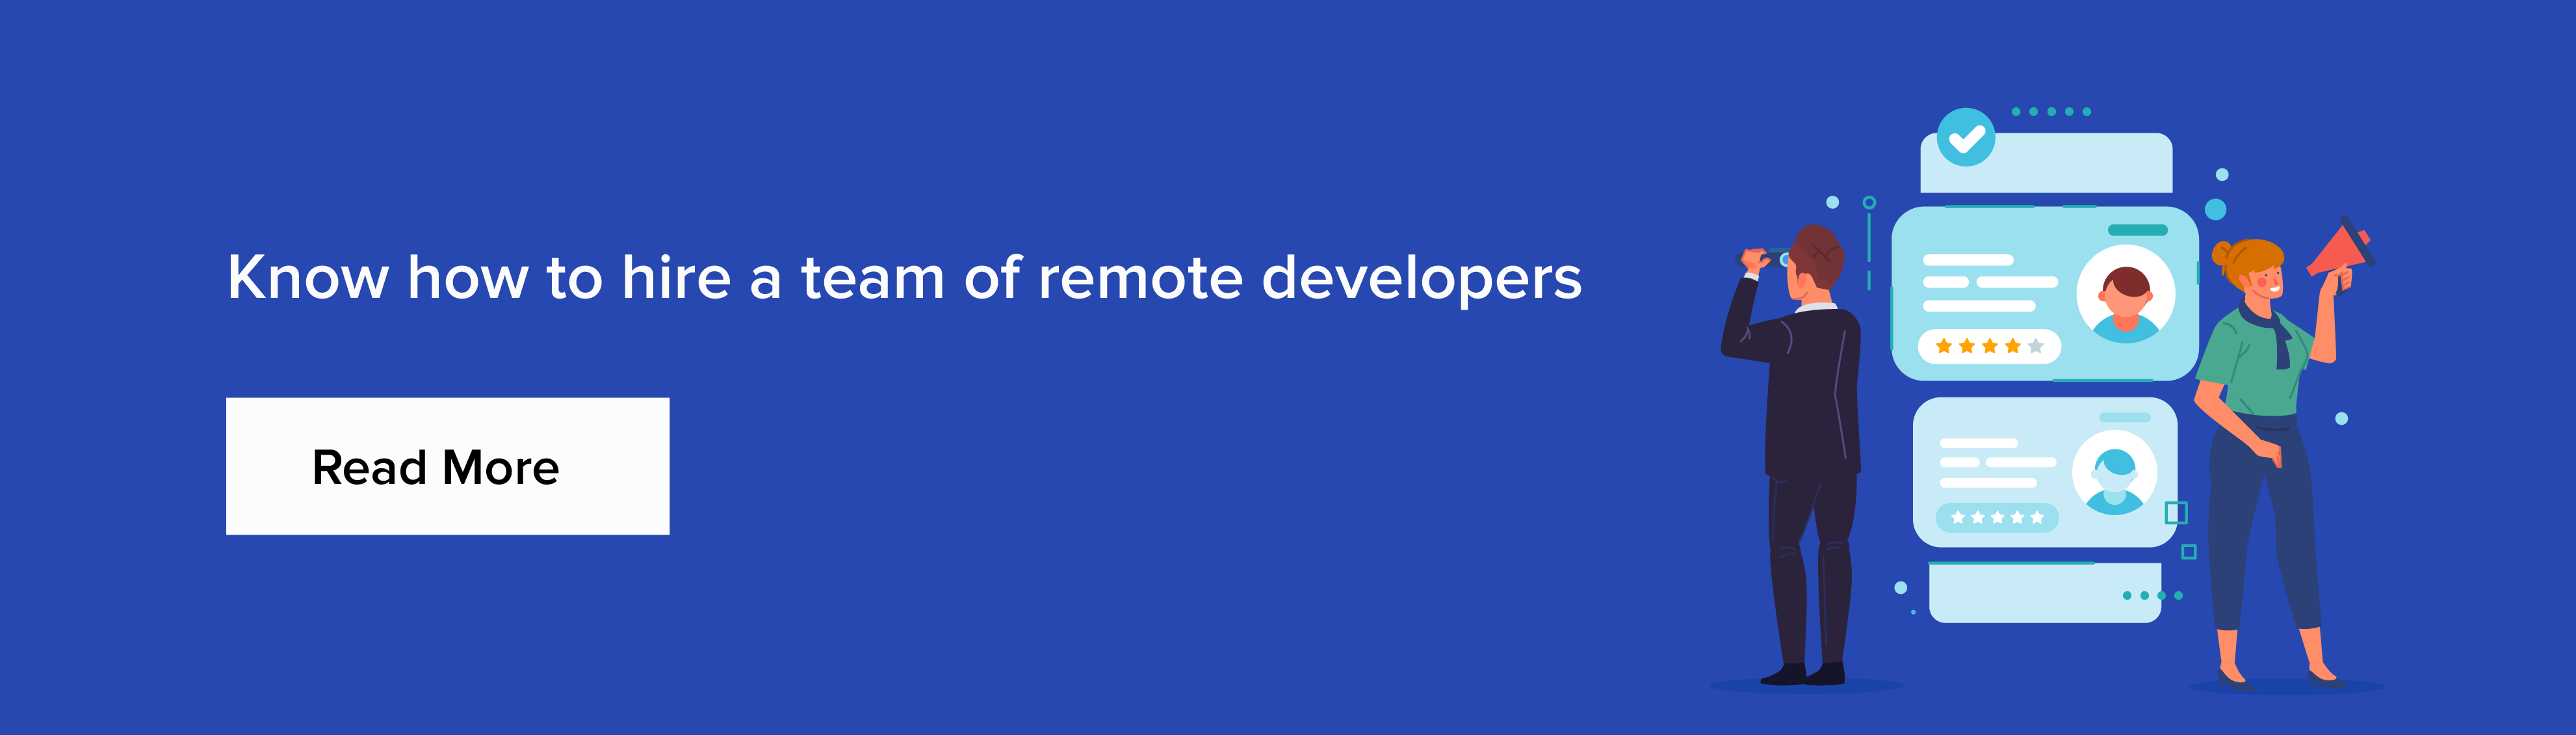 know how to hire remote developers